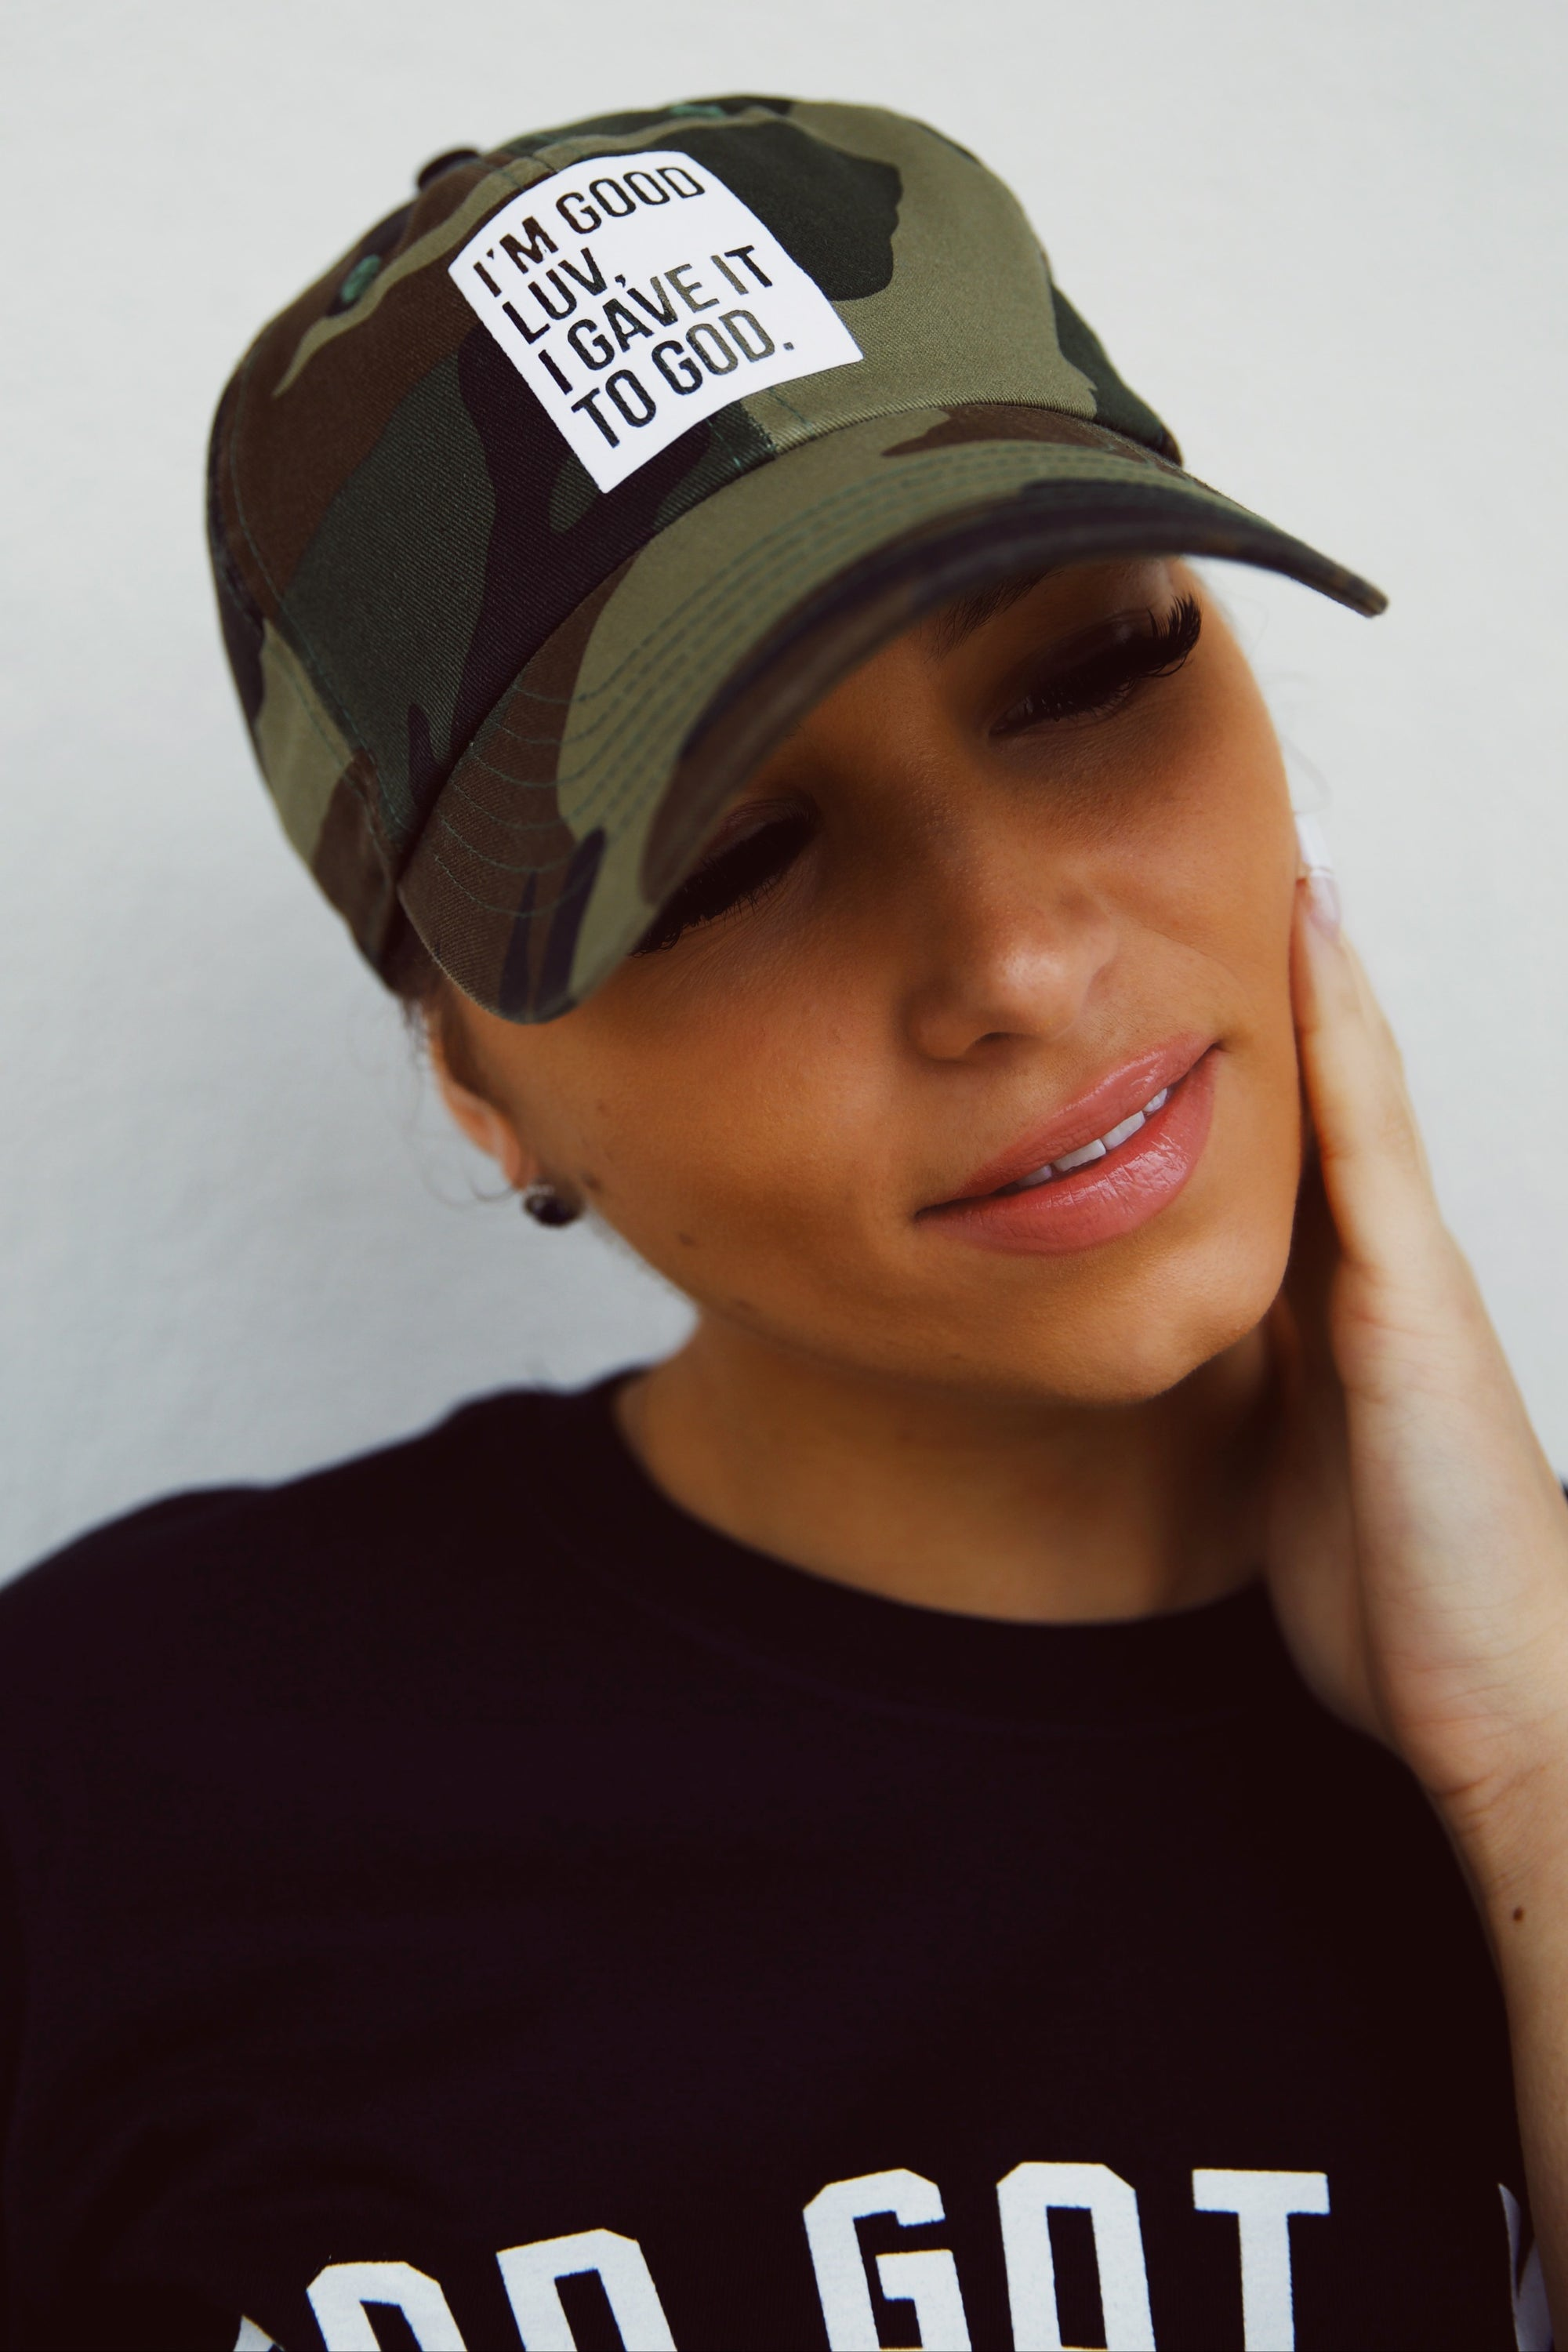 """I'M GOOD LUV"" CAMO HAT (WHITE BOX)"